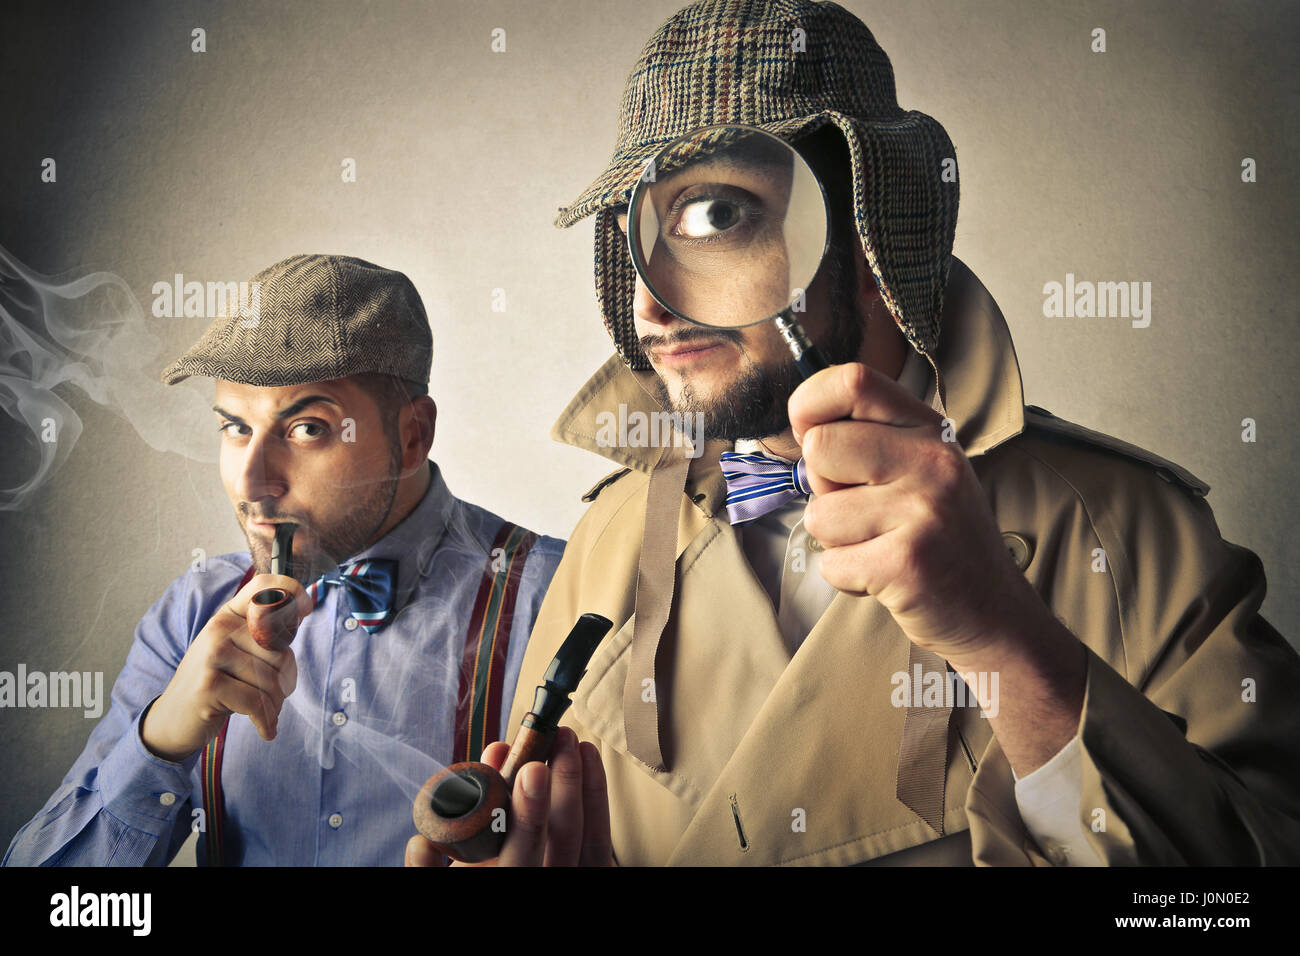 Investigator with magnifying glass and partner - Stock Image